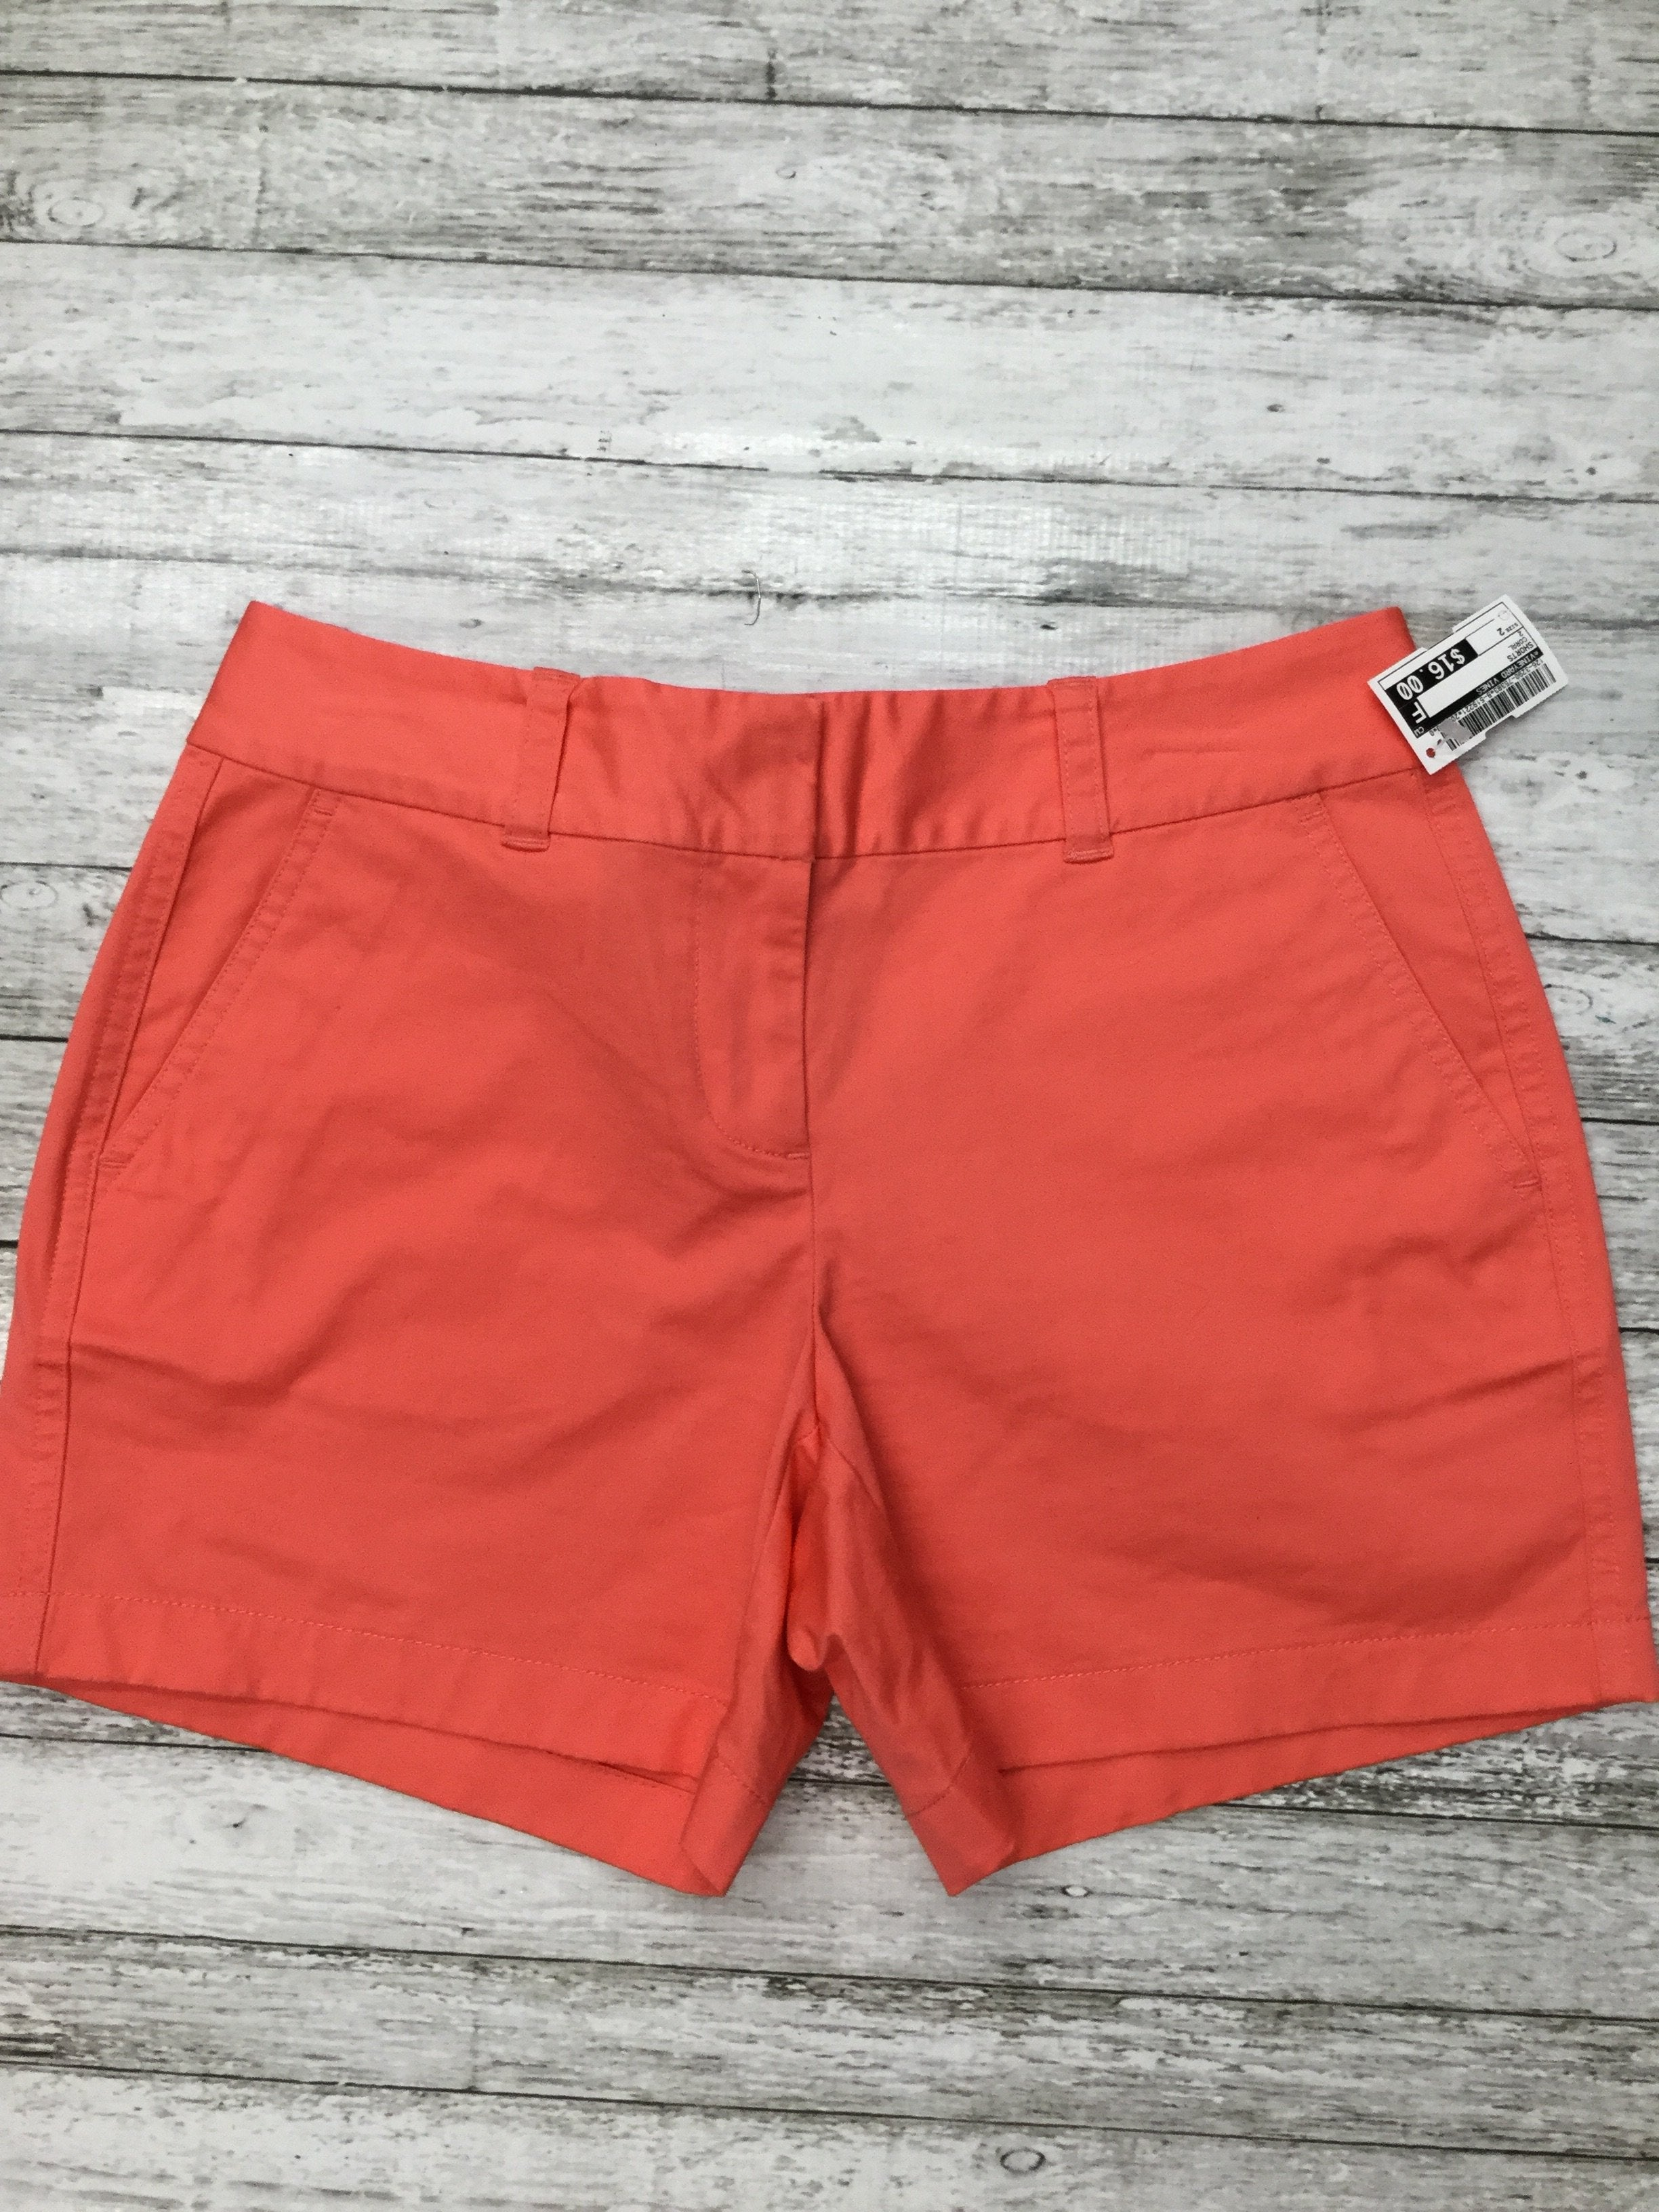 Primary Photo - brand: vineyard vines , style: shorts , color: coral , size: 2 , sku: 126-3290-75383